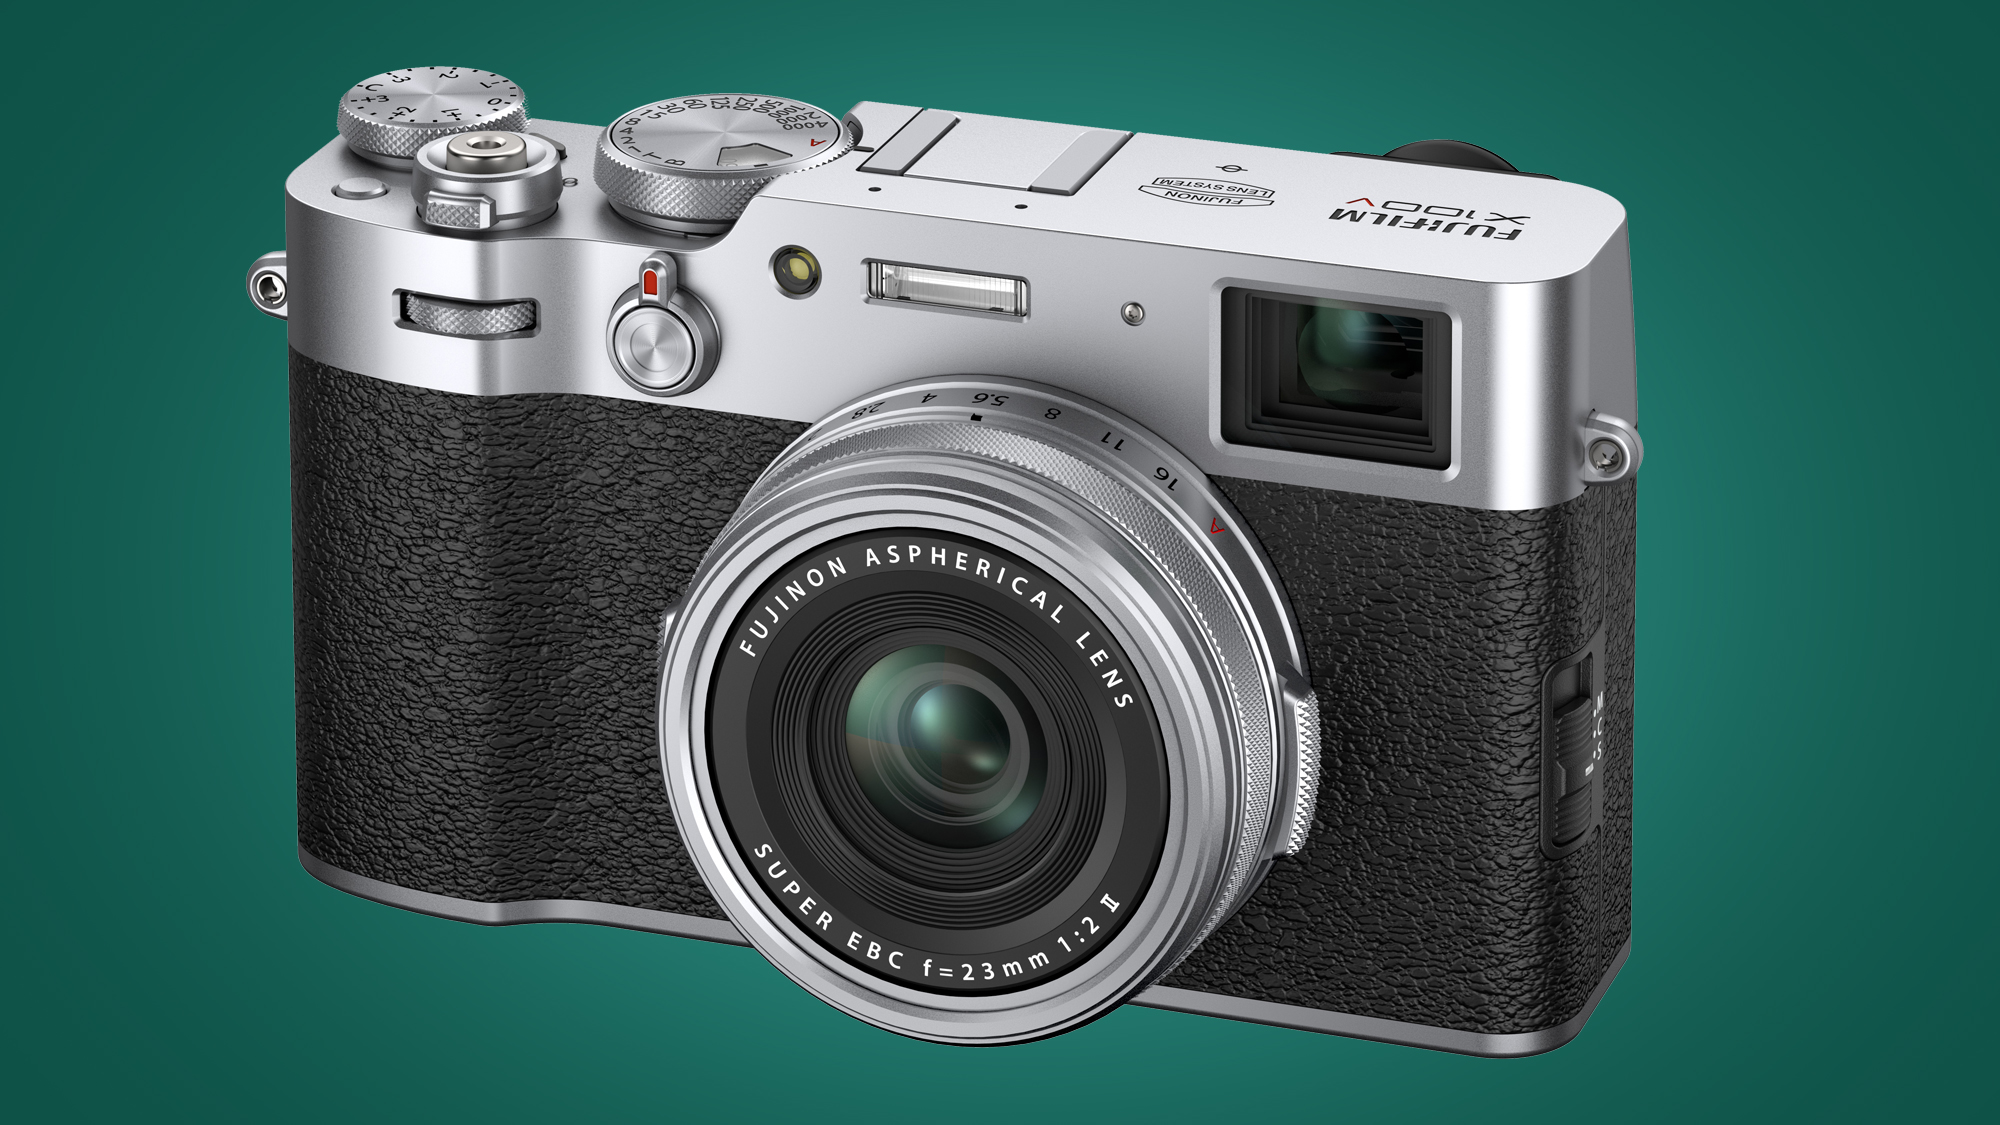 The new Fujifilm X100V is (almost) the perfect street photography compact